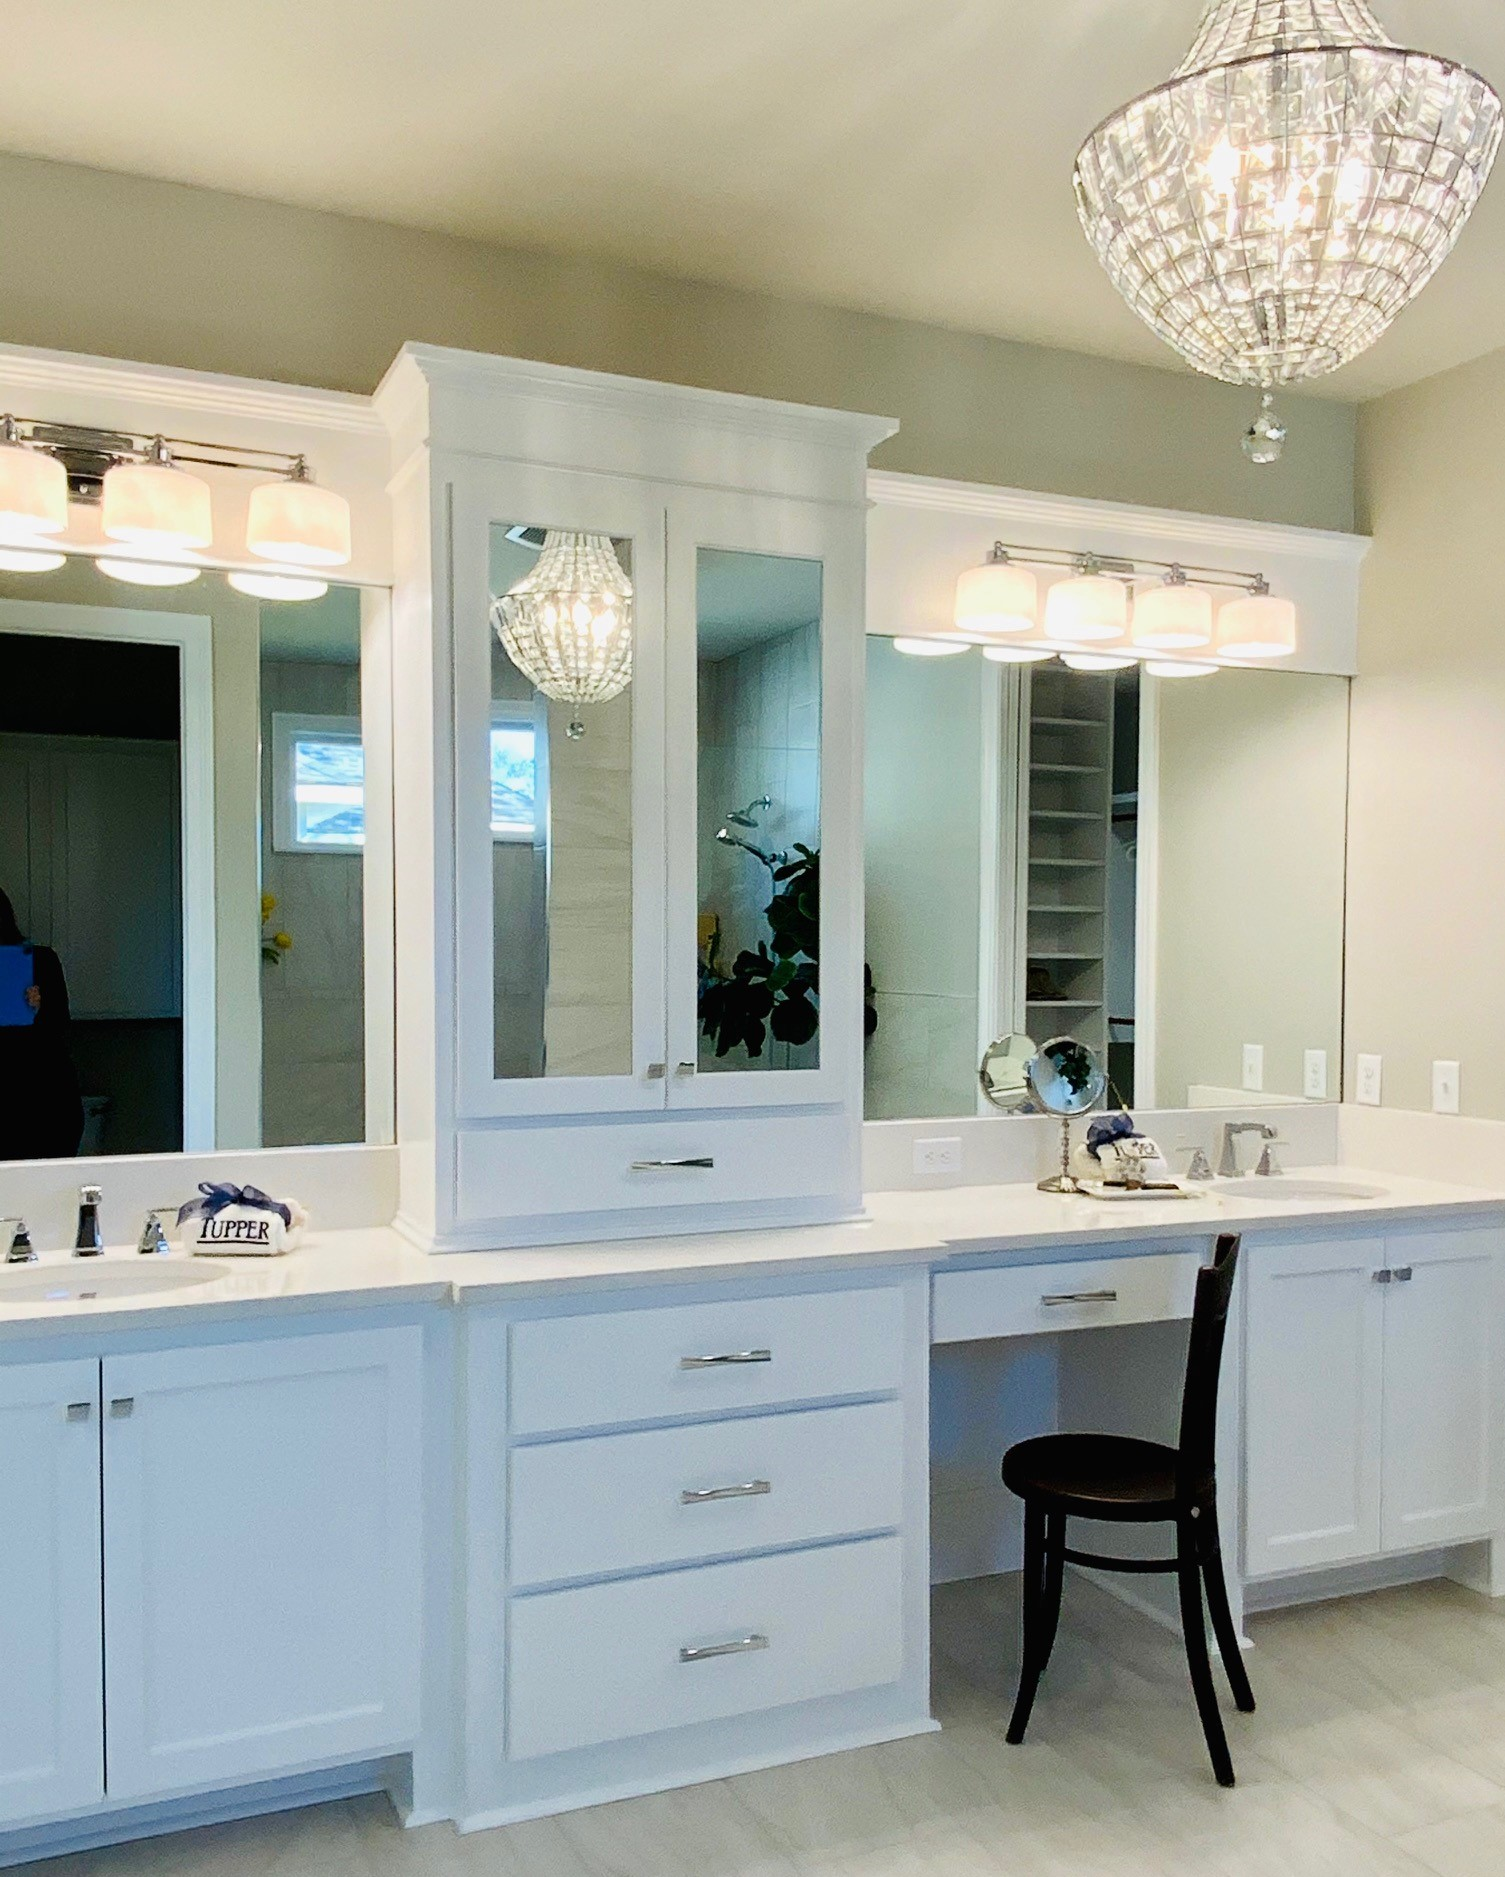 larger his and her vanity